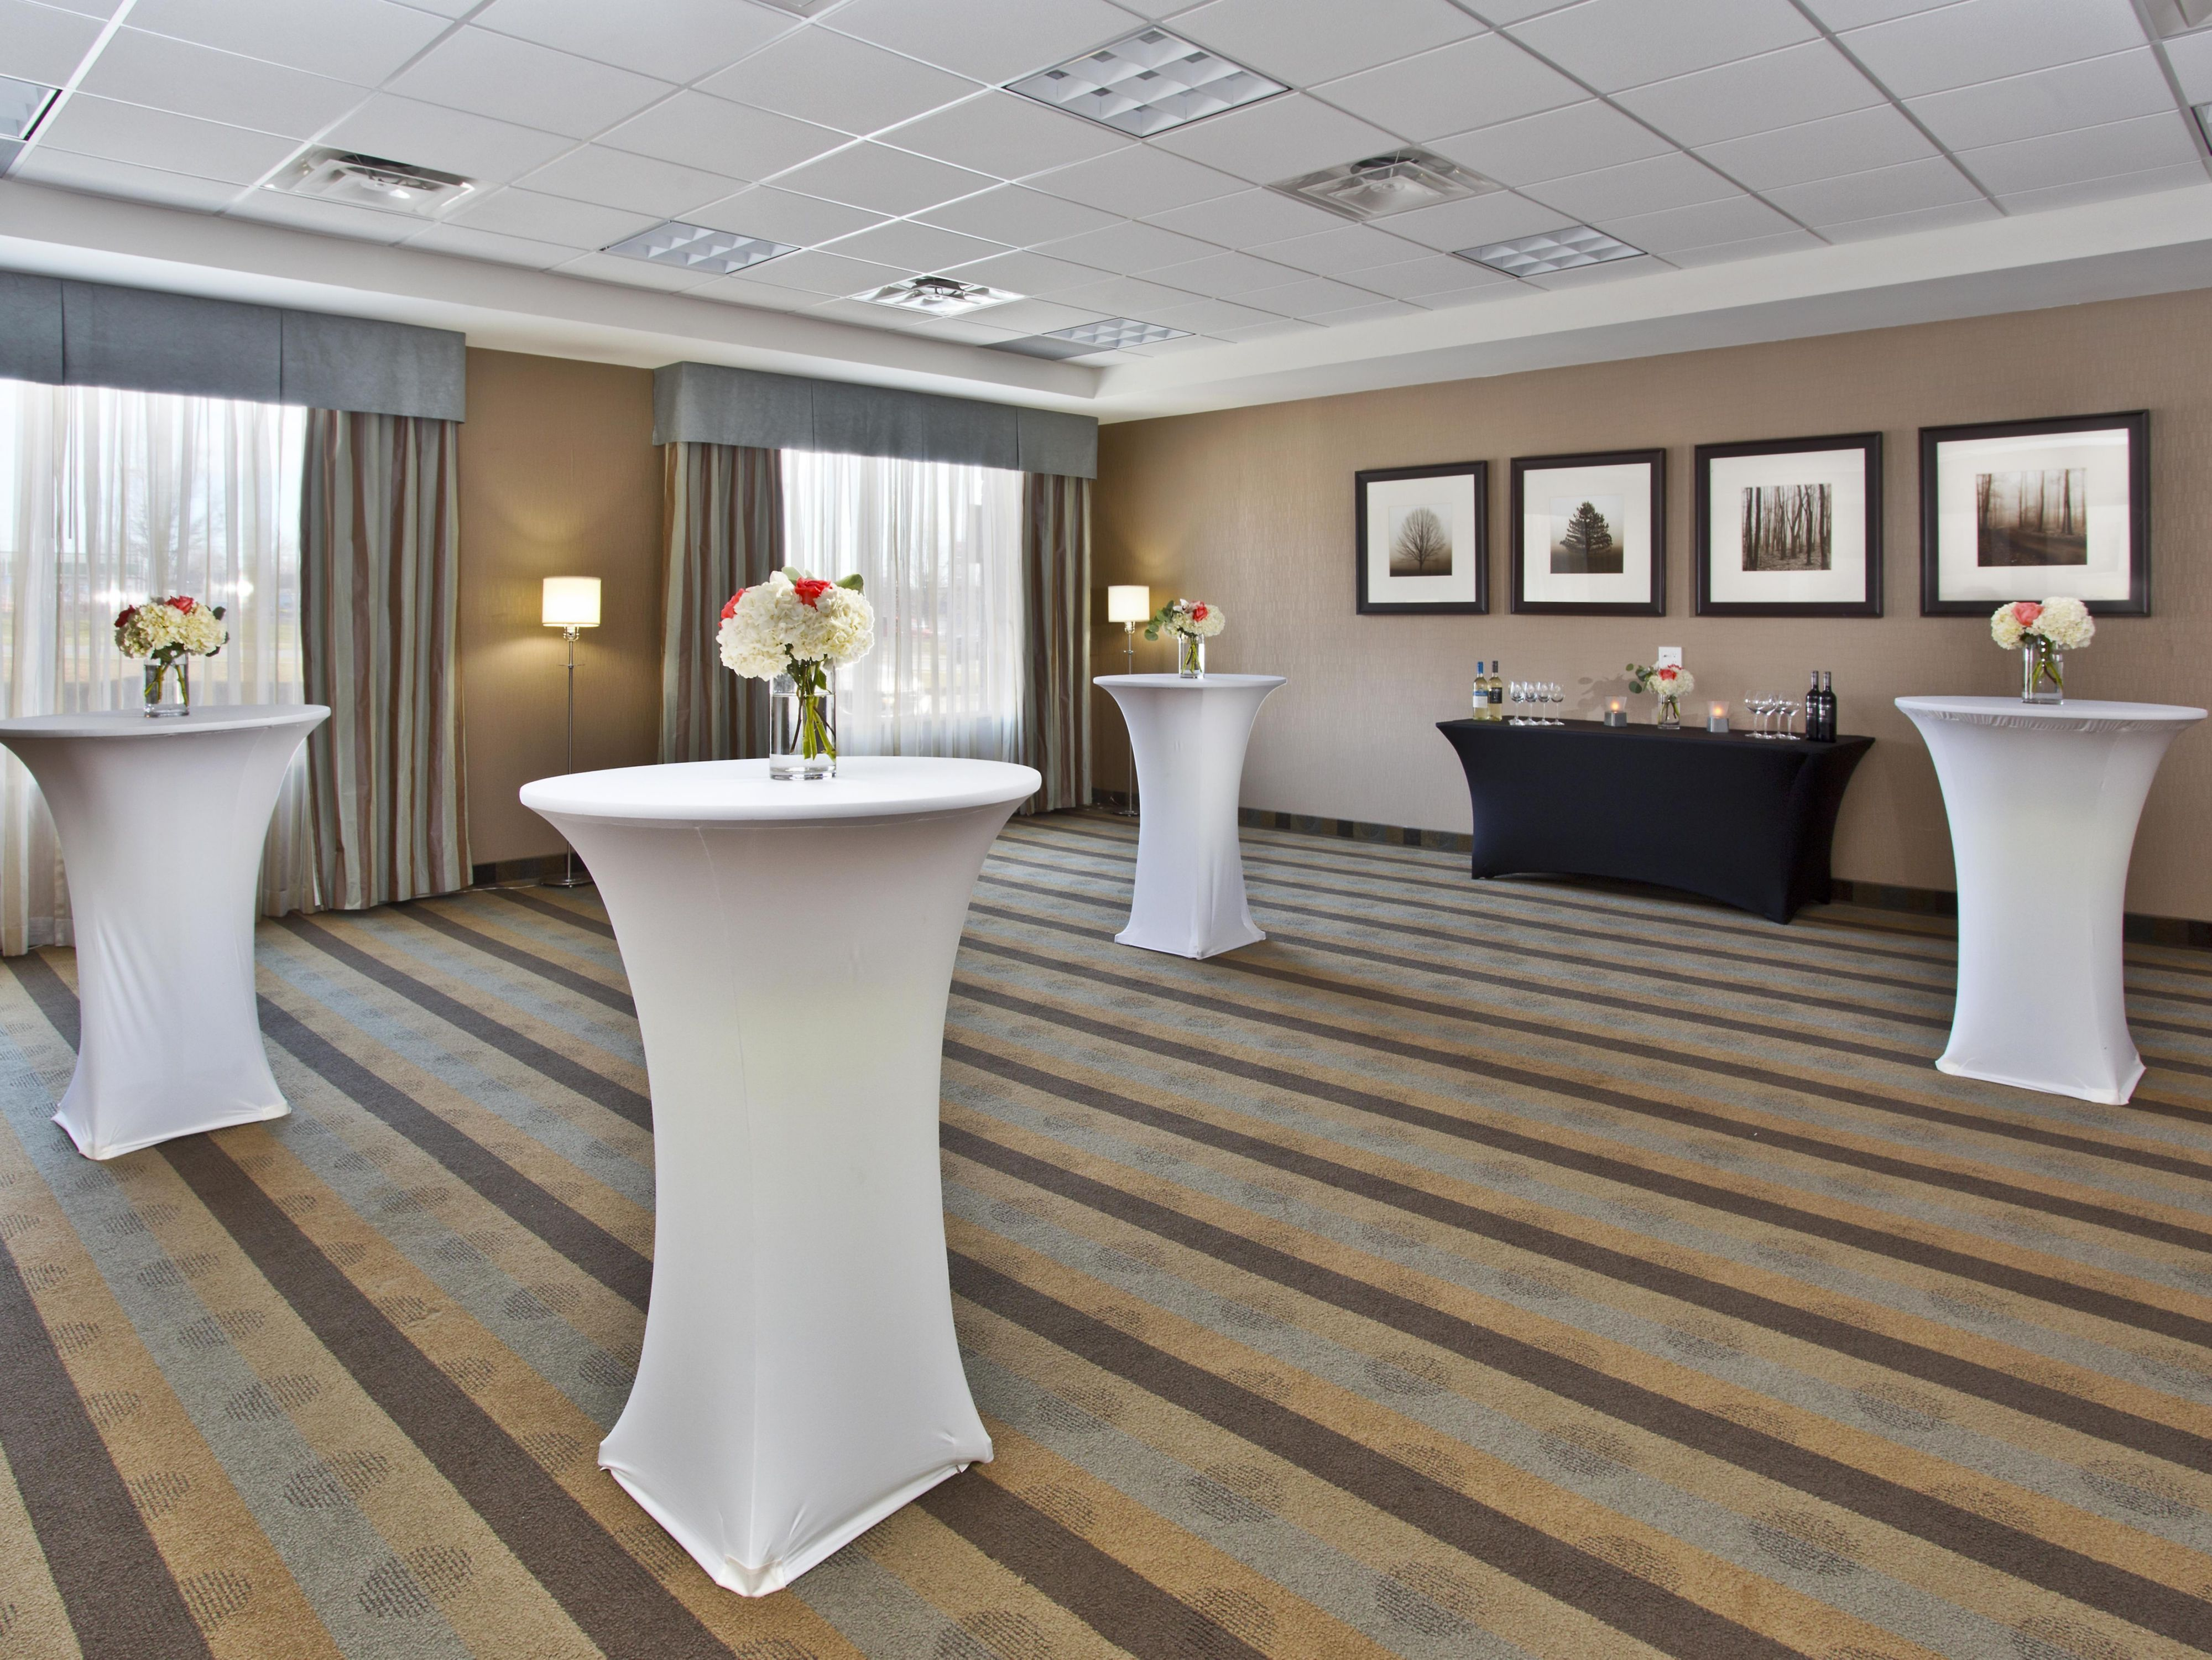 Meeting room setup in a banquet format